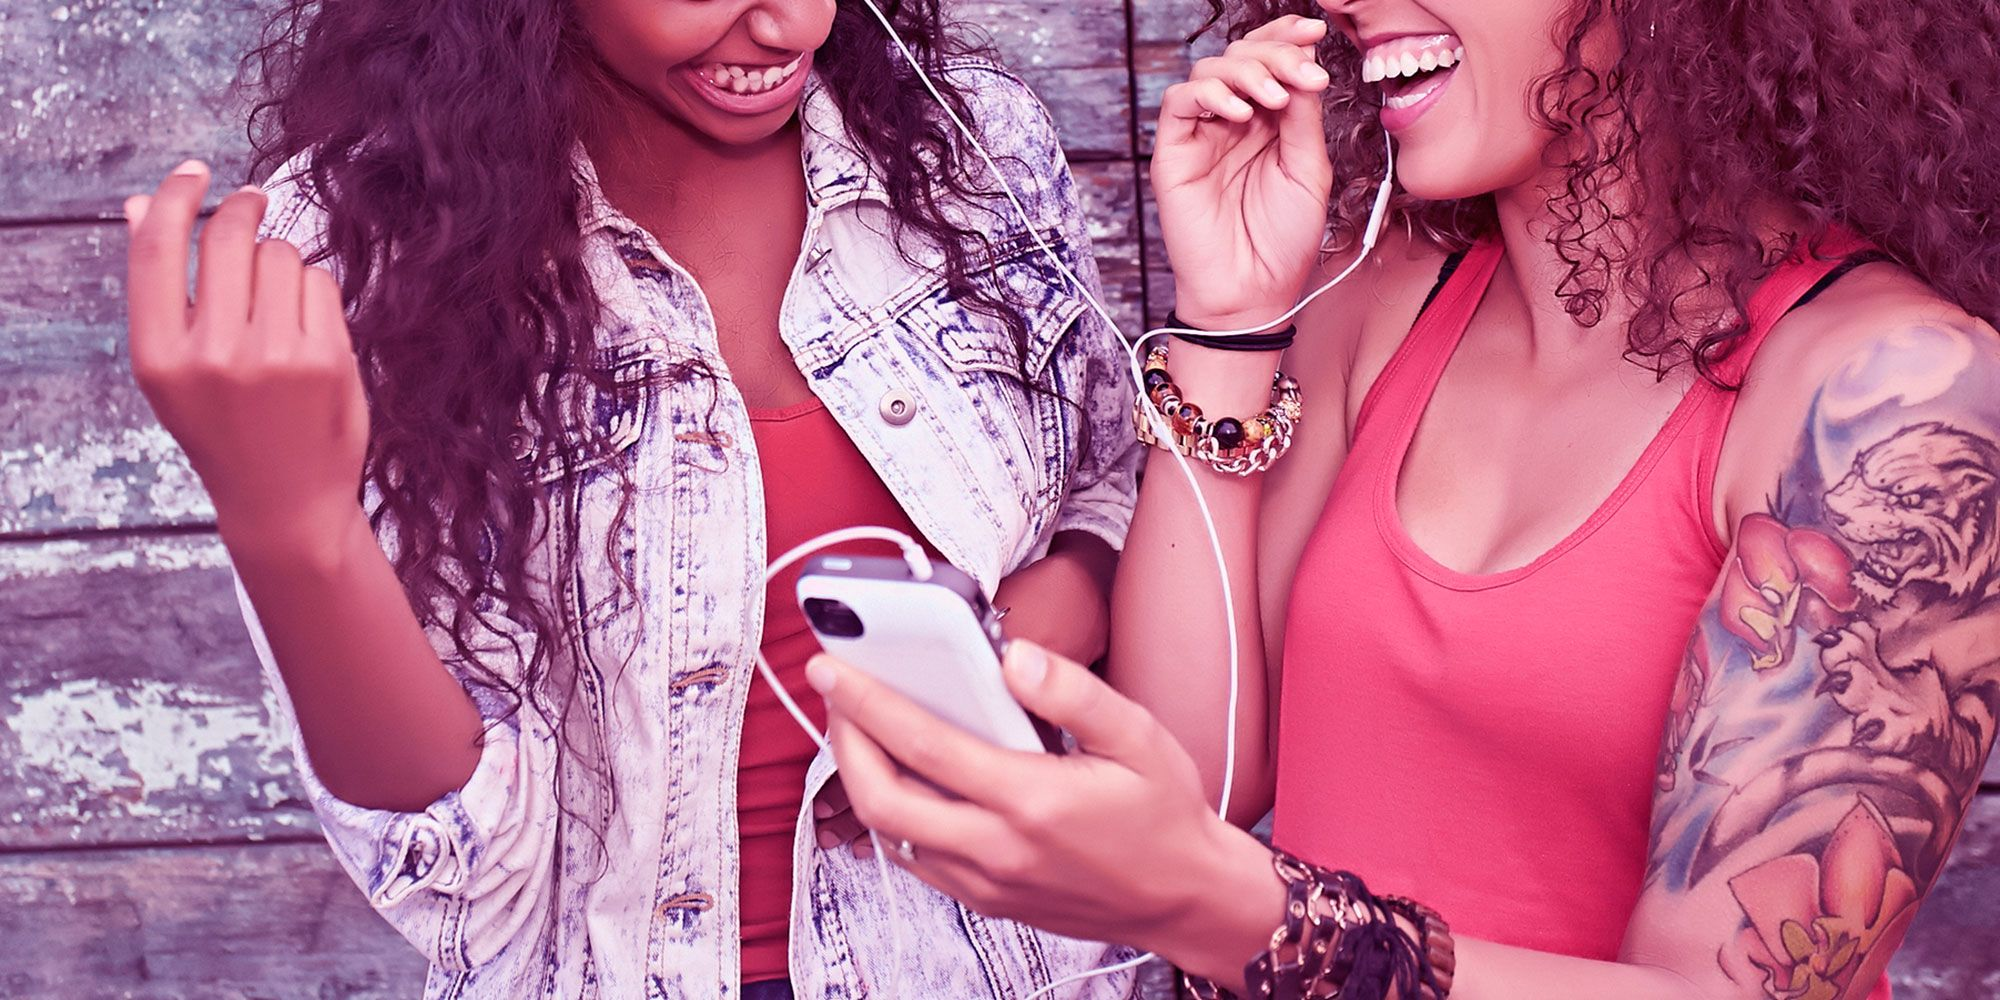 Female friends laughing